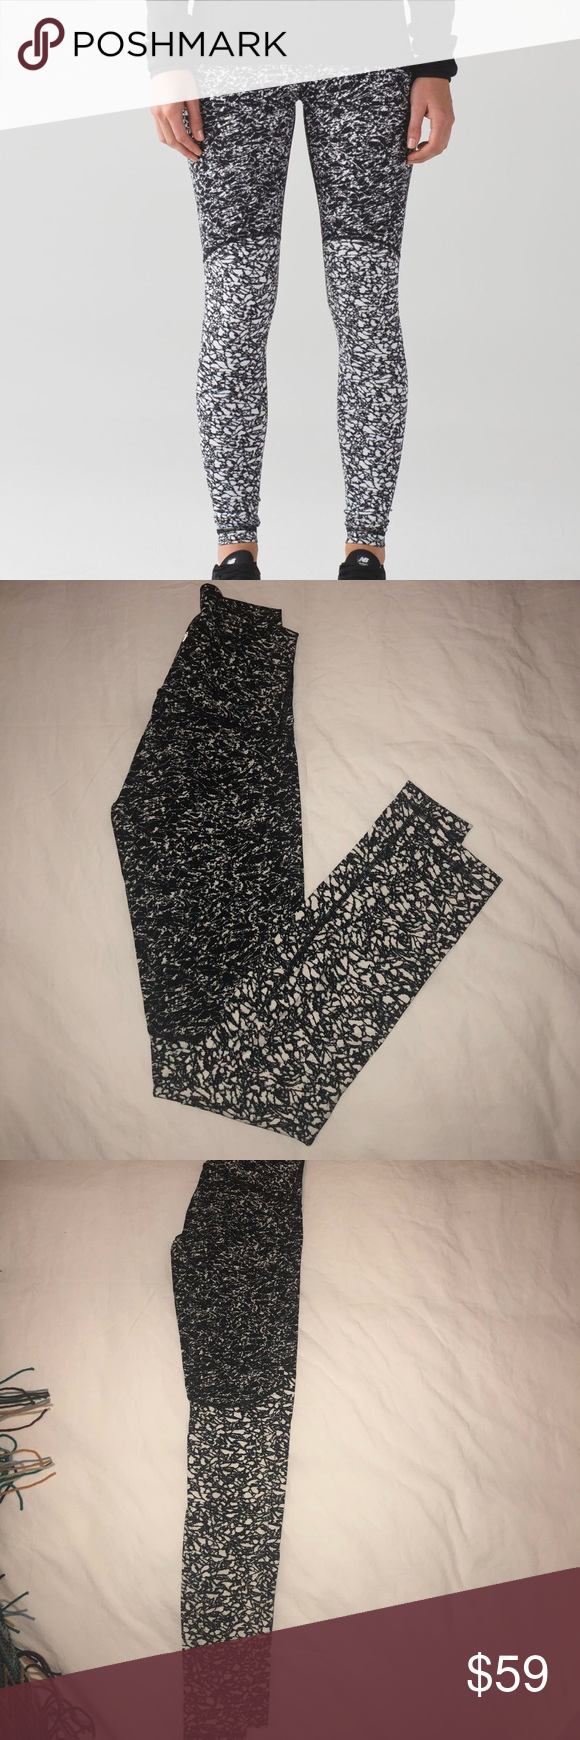 1befd29c1508c8 Lululemon Wunder Under Pant (Hi-Rise) Ice Breaker Lululemon Wunder Under  Pant (Hi-Rise). Only worn once! Like New! Ice Breaker White Black / Iced  Wave White ...